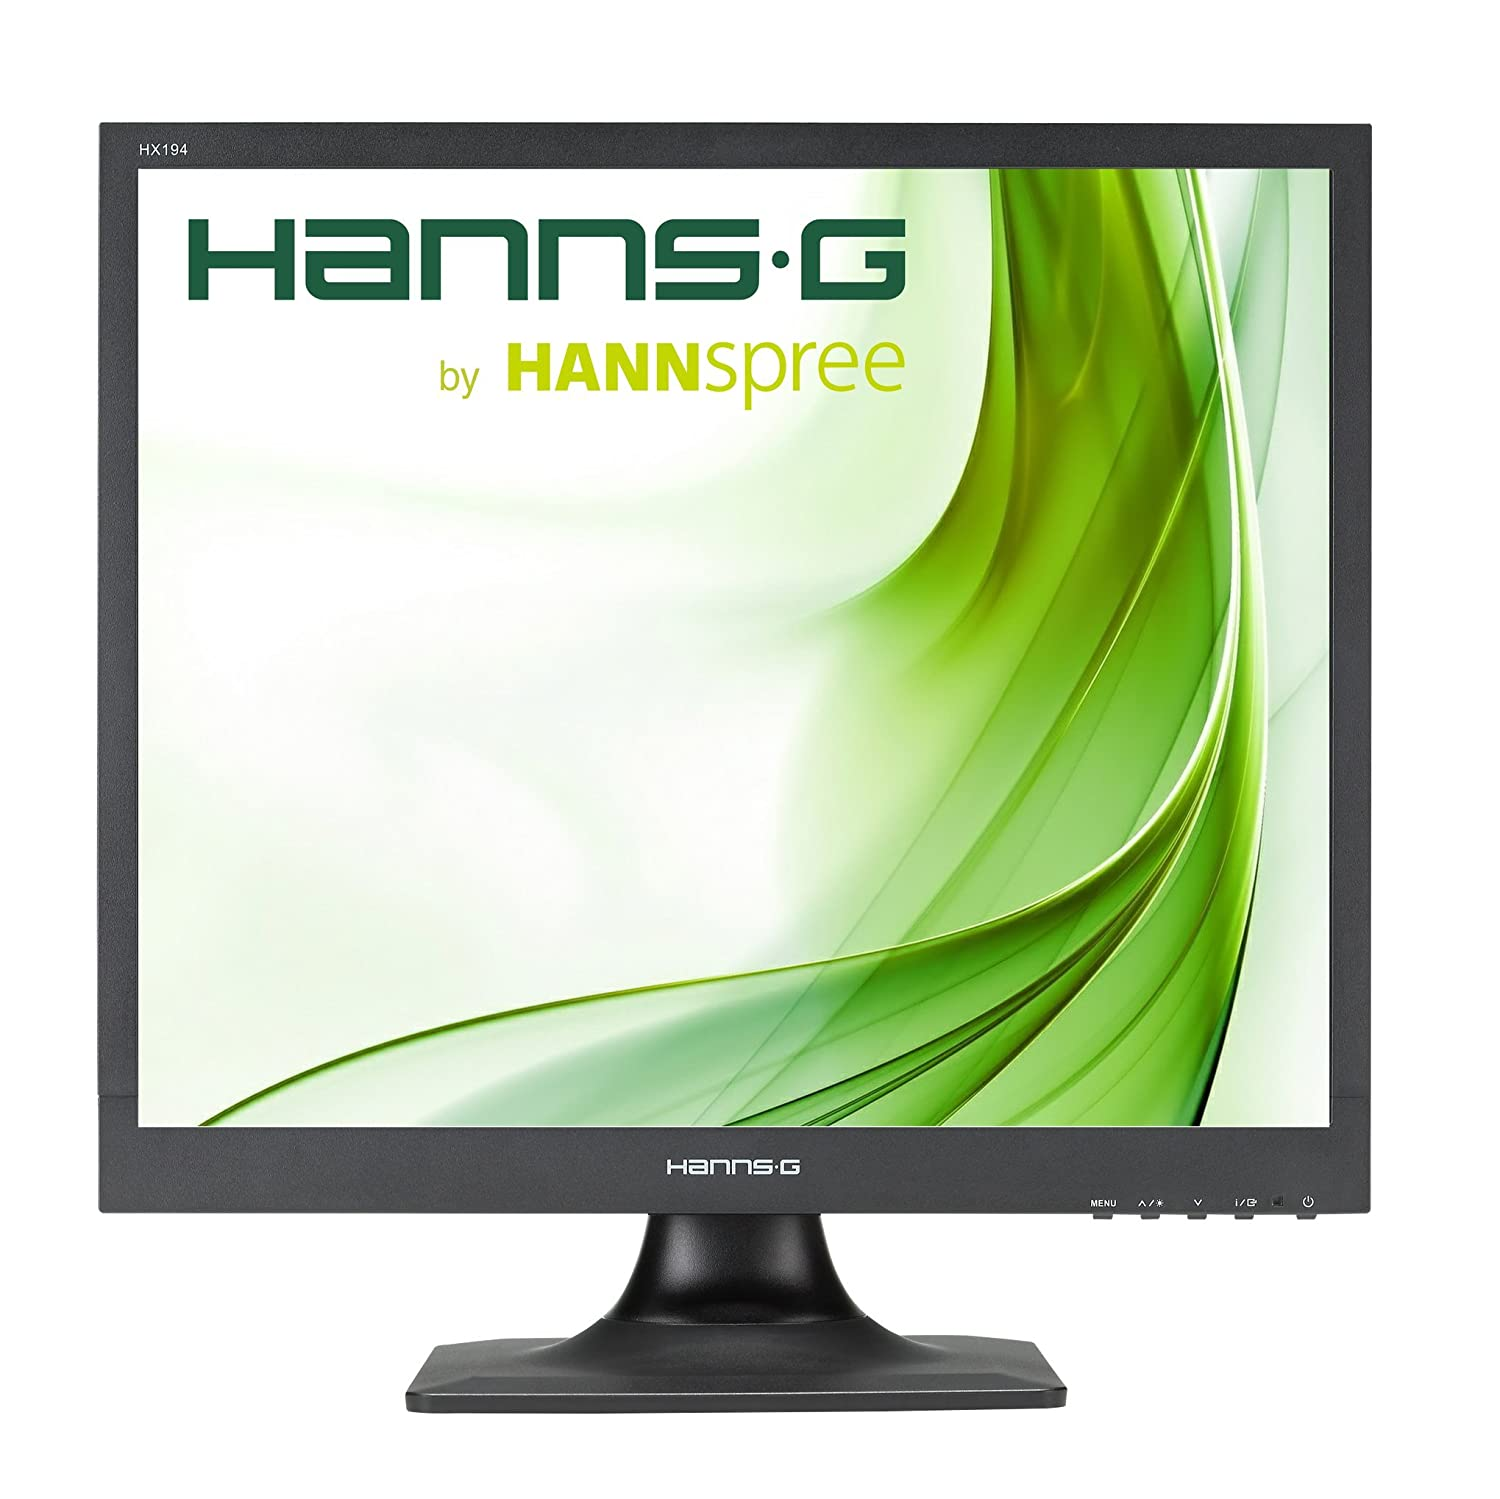 Hanns G HX194DPB 19-Inch Monitor - Black: Amazon.co.uk: Computers &  Accessories